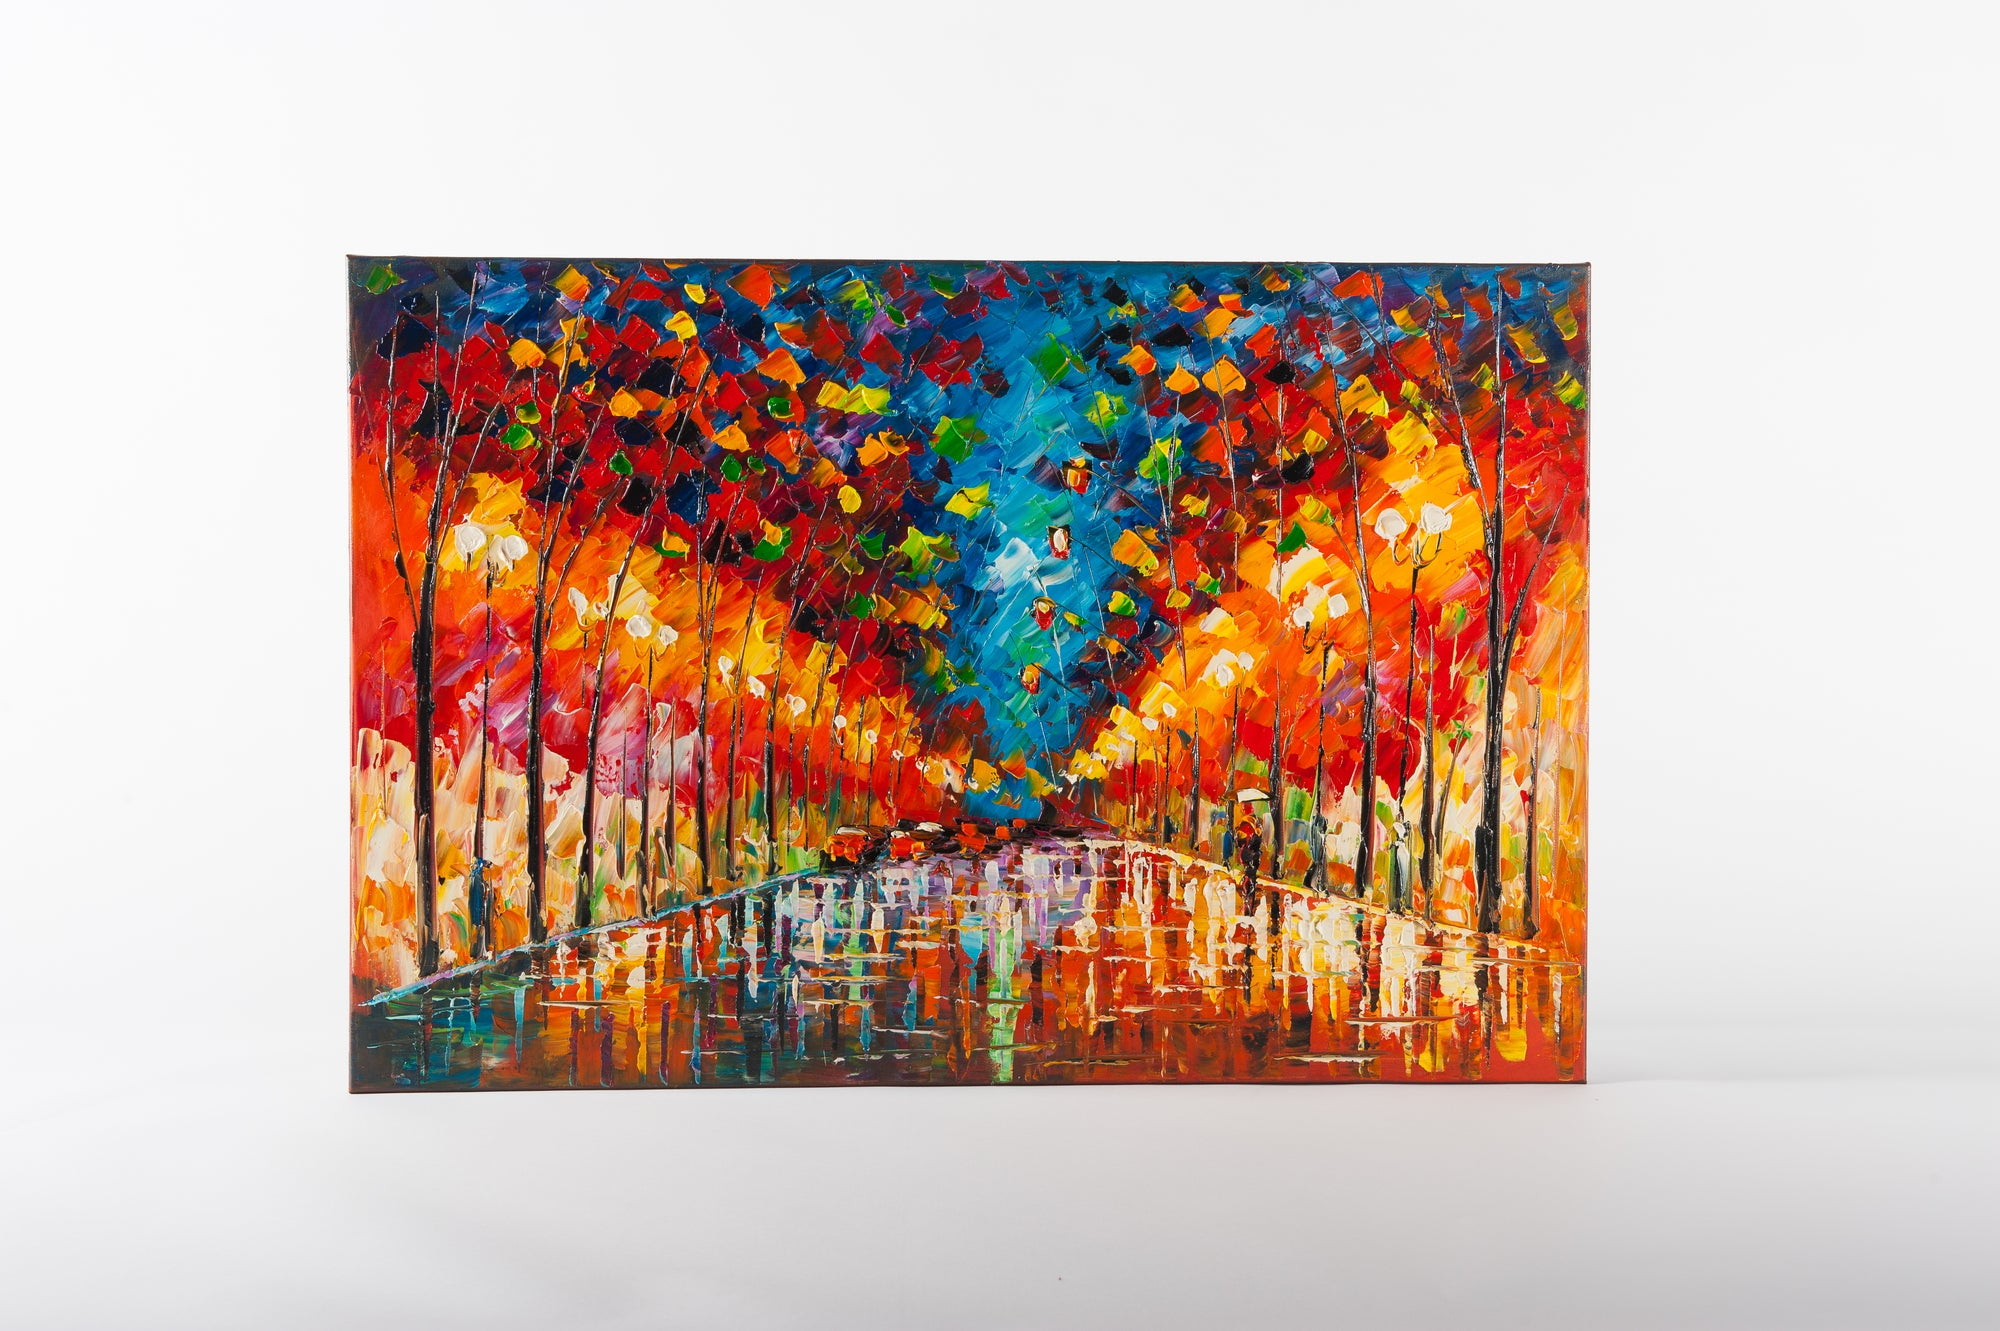 city light at night hand painted wall art on canvas - Fervor + Hue